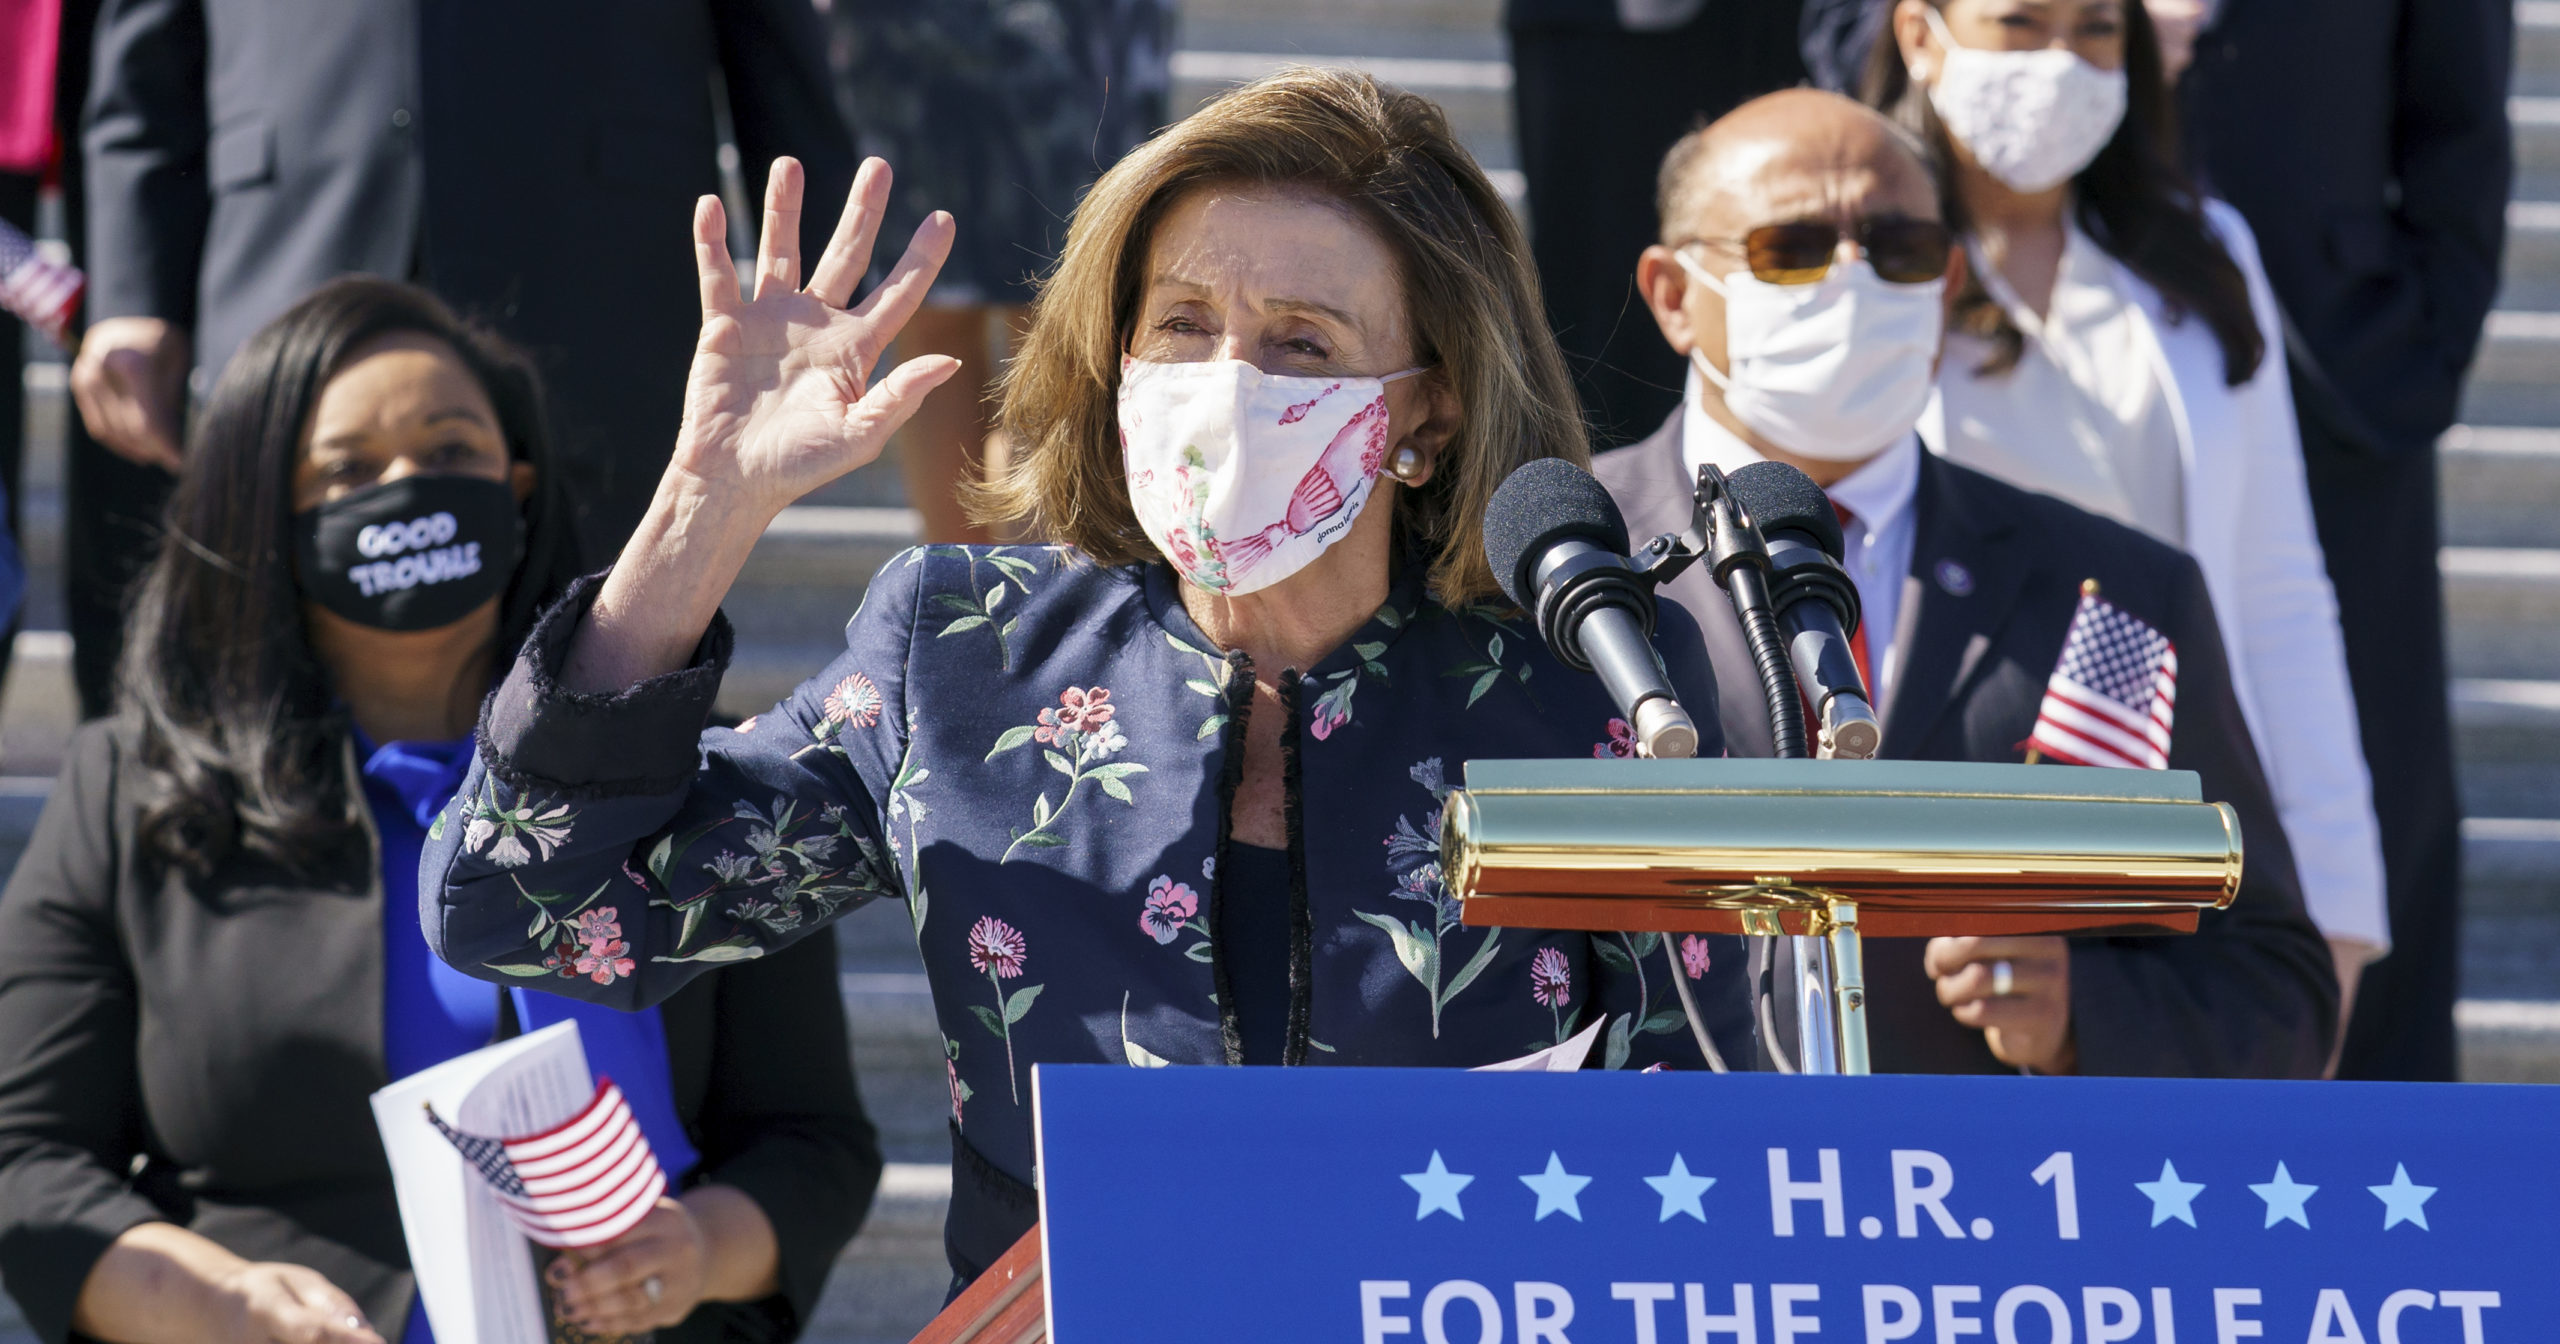 Speaker of the House Nancy Pelosi and the Democratic Caucus gather to address reporters at the Capitol in Washington, D.C., on March 3, 2021. (